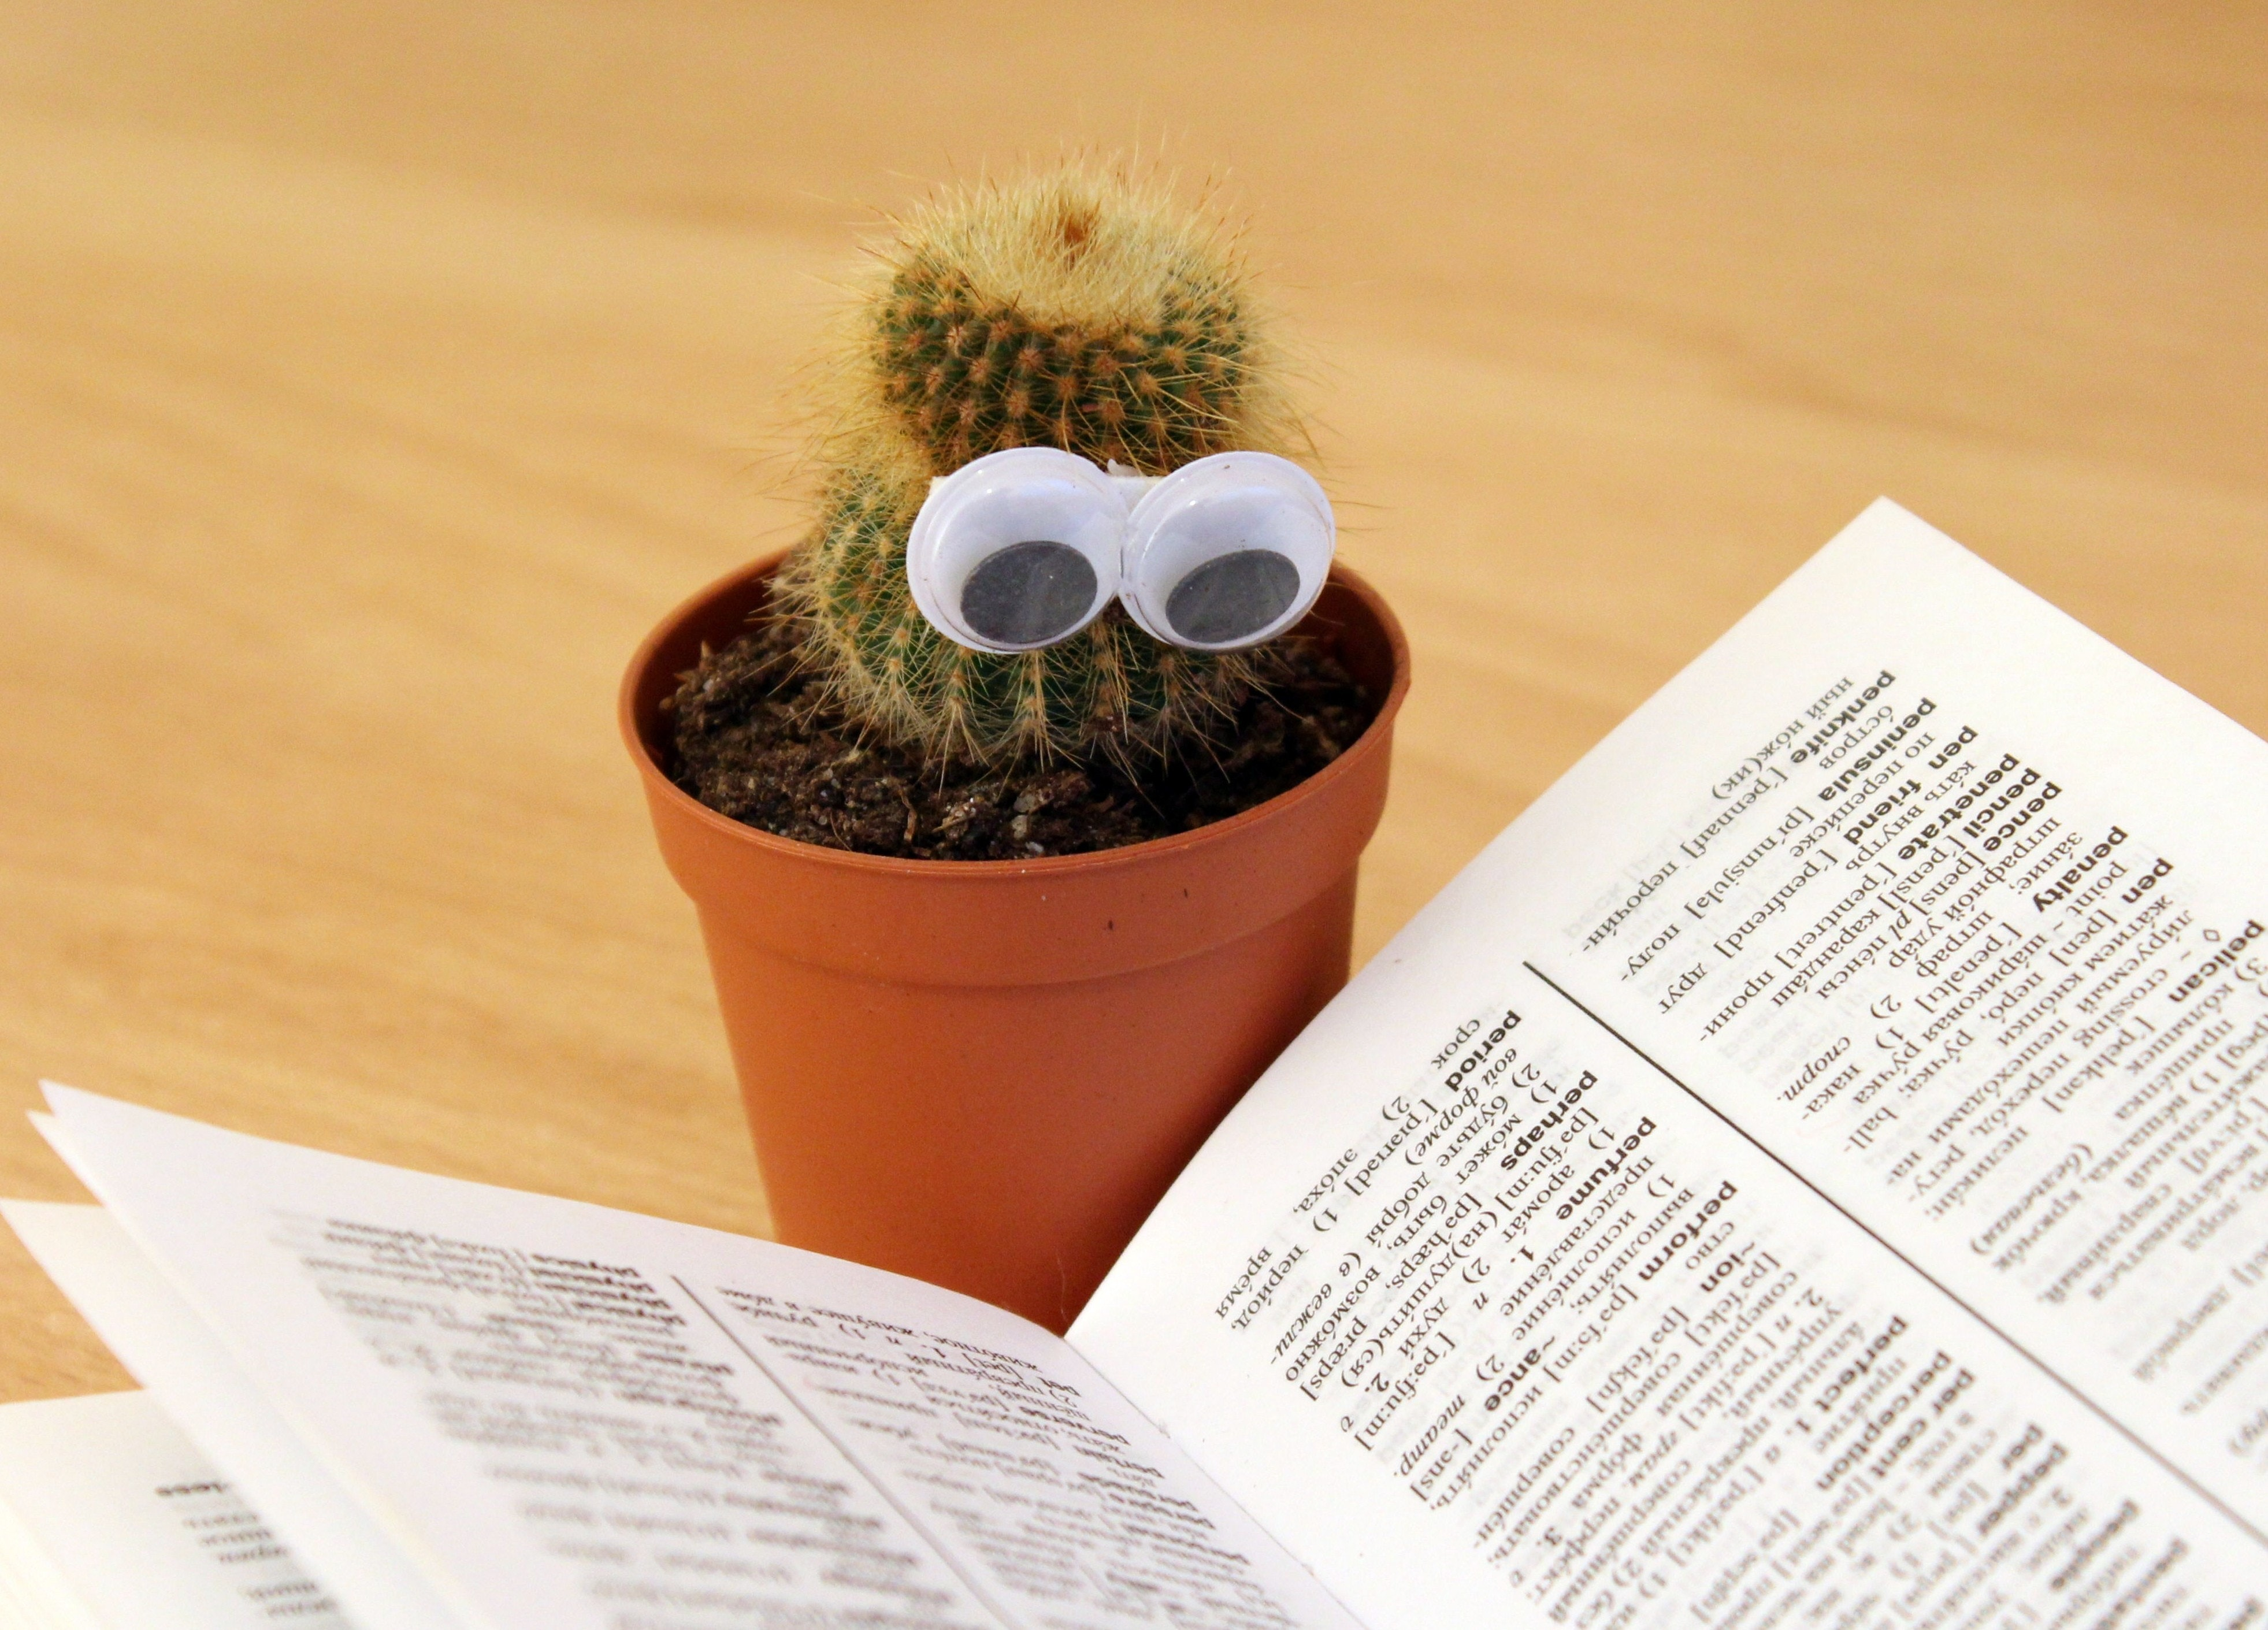 Book cactus knowledge 159840